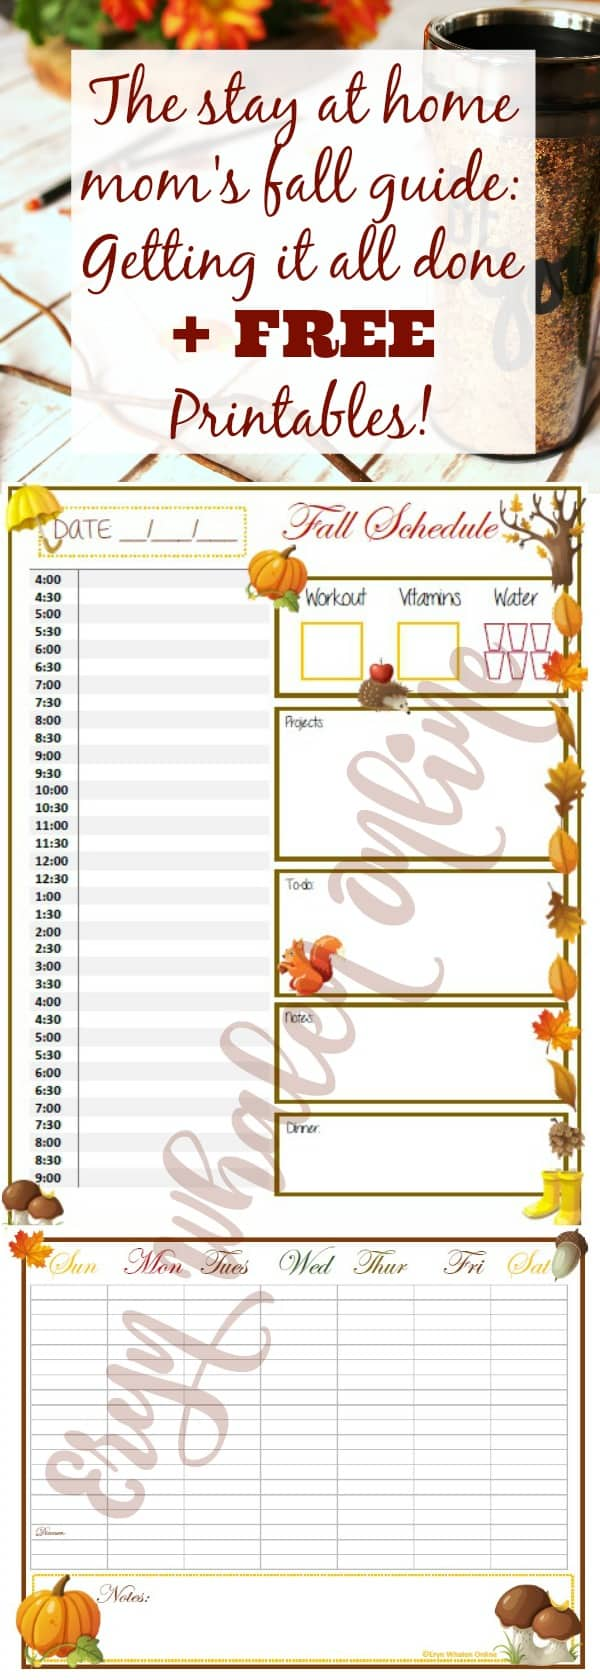 free printables, printables, fall printables, fall schedule, fall guide, getting it all done guide, how to be efficient, autumn schedule, autumn, fall, winter,